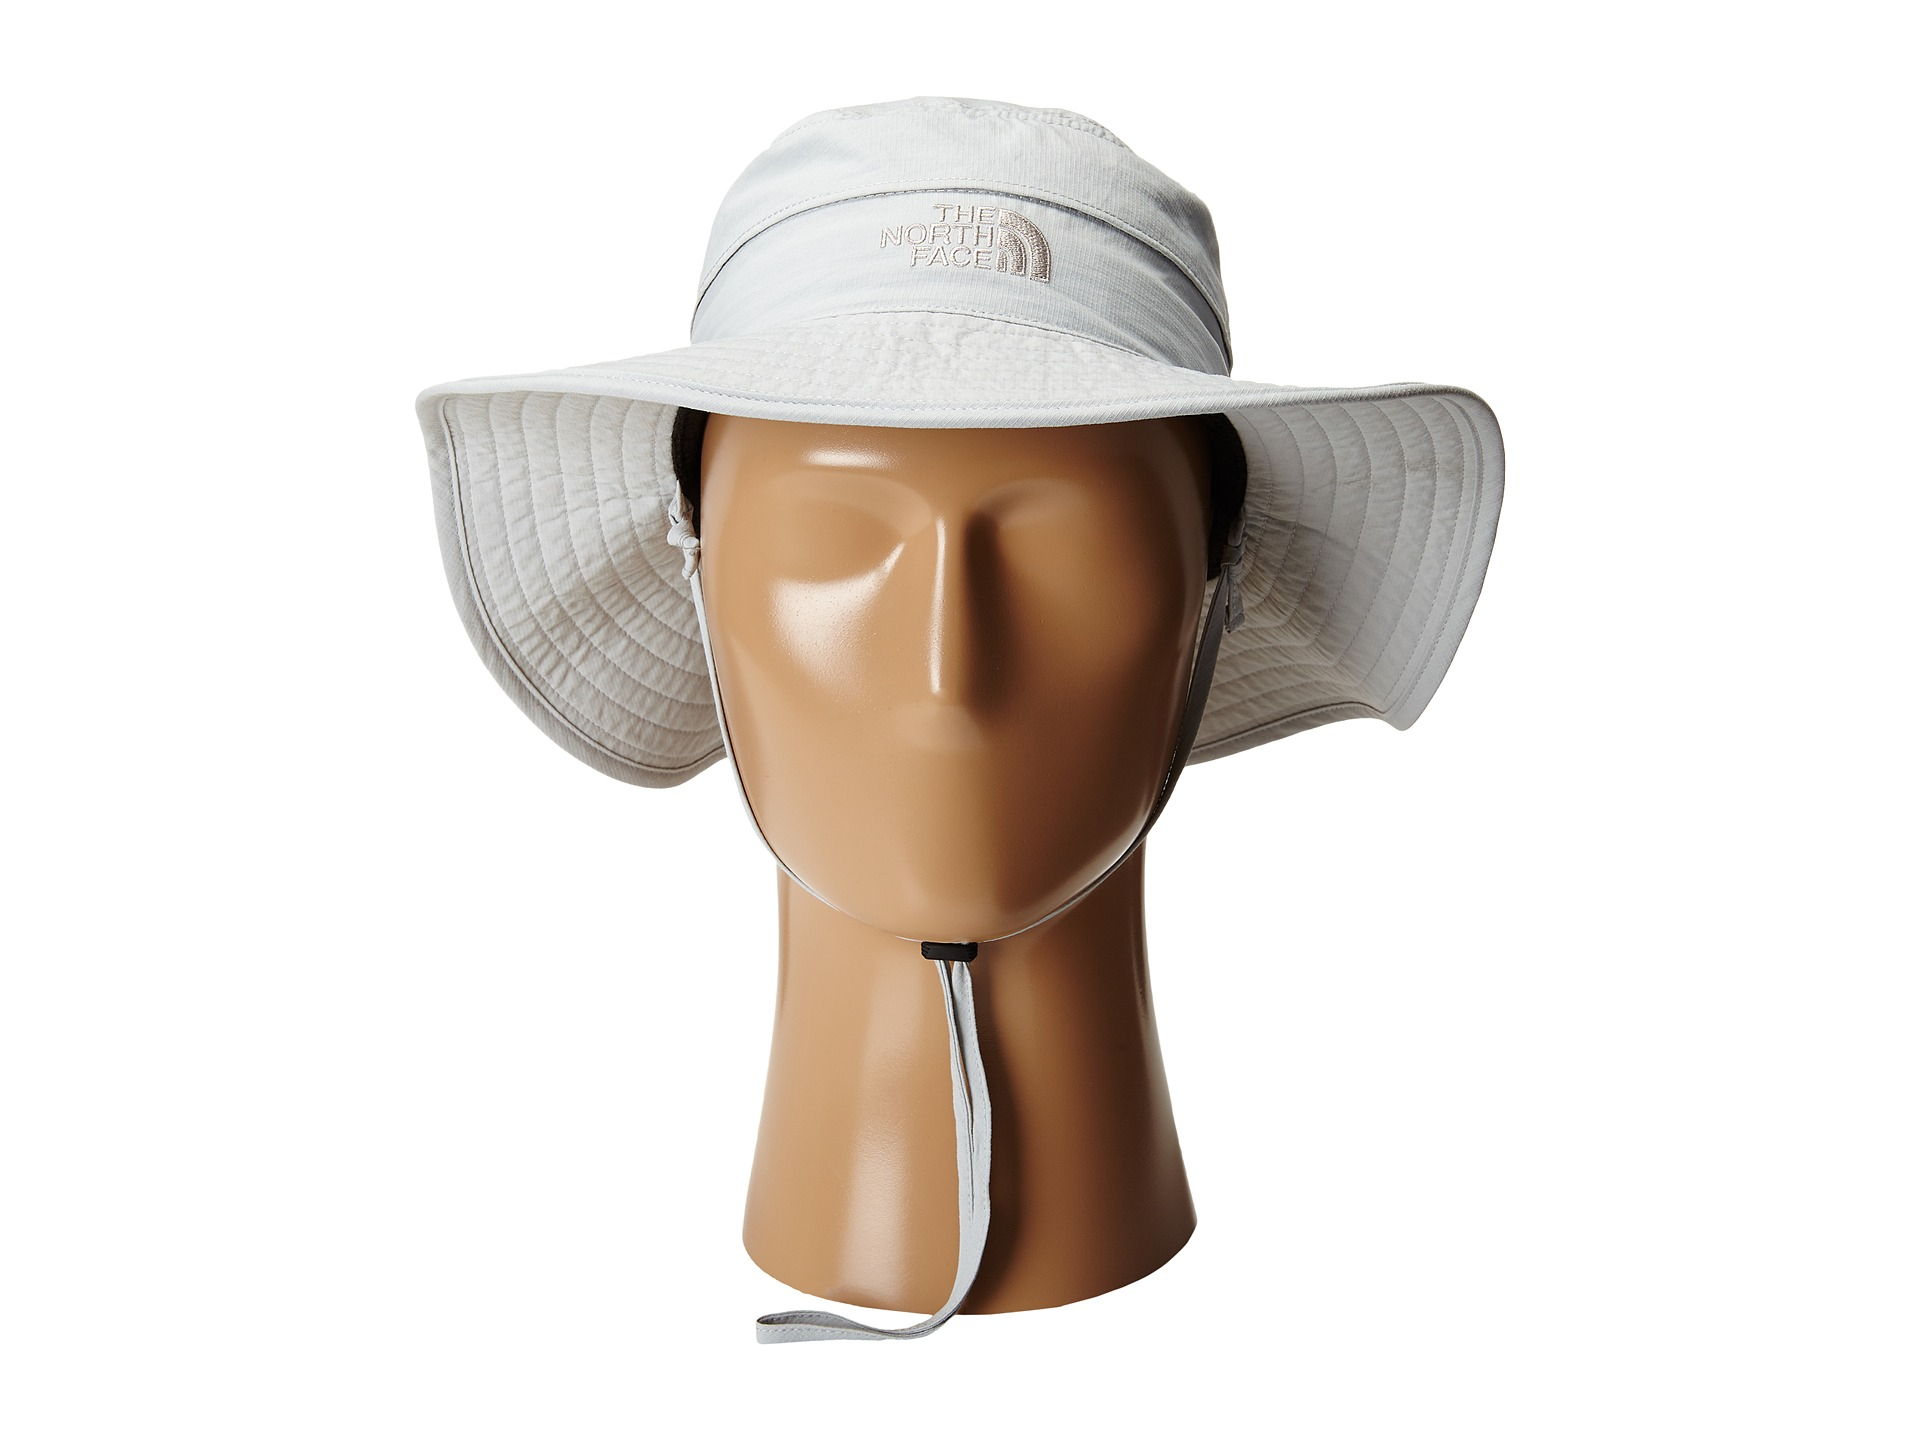 Lyst - The North Face Horizon Breeze Brimmer Hat in Gray cb14f724eac7